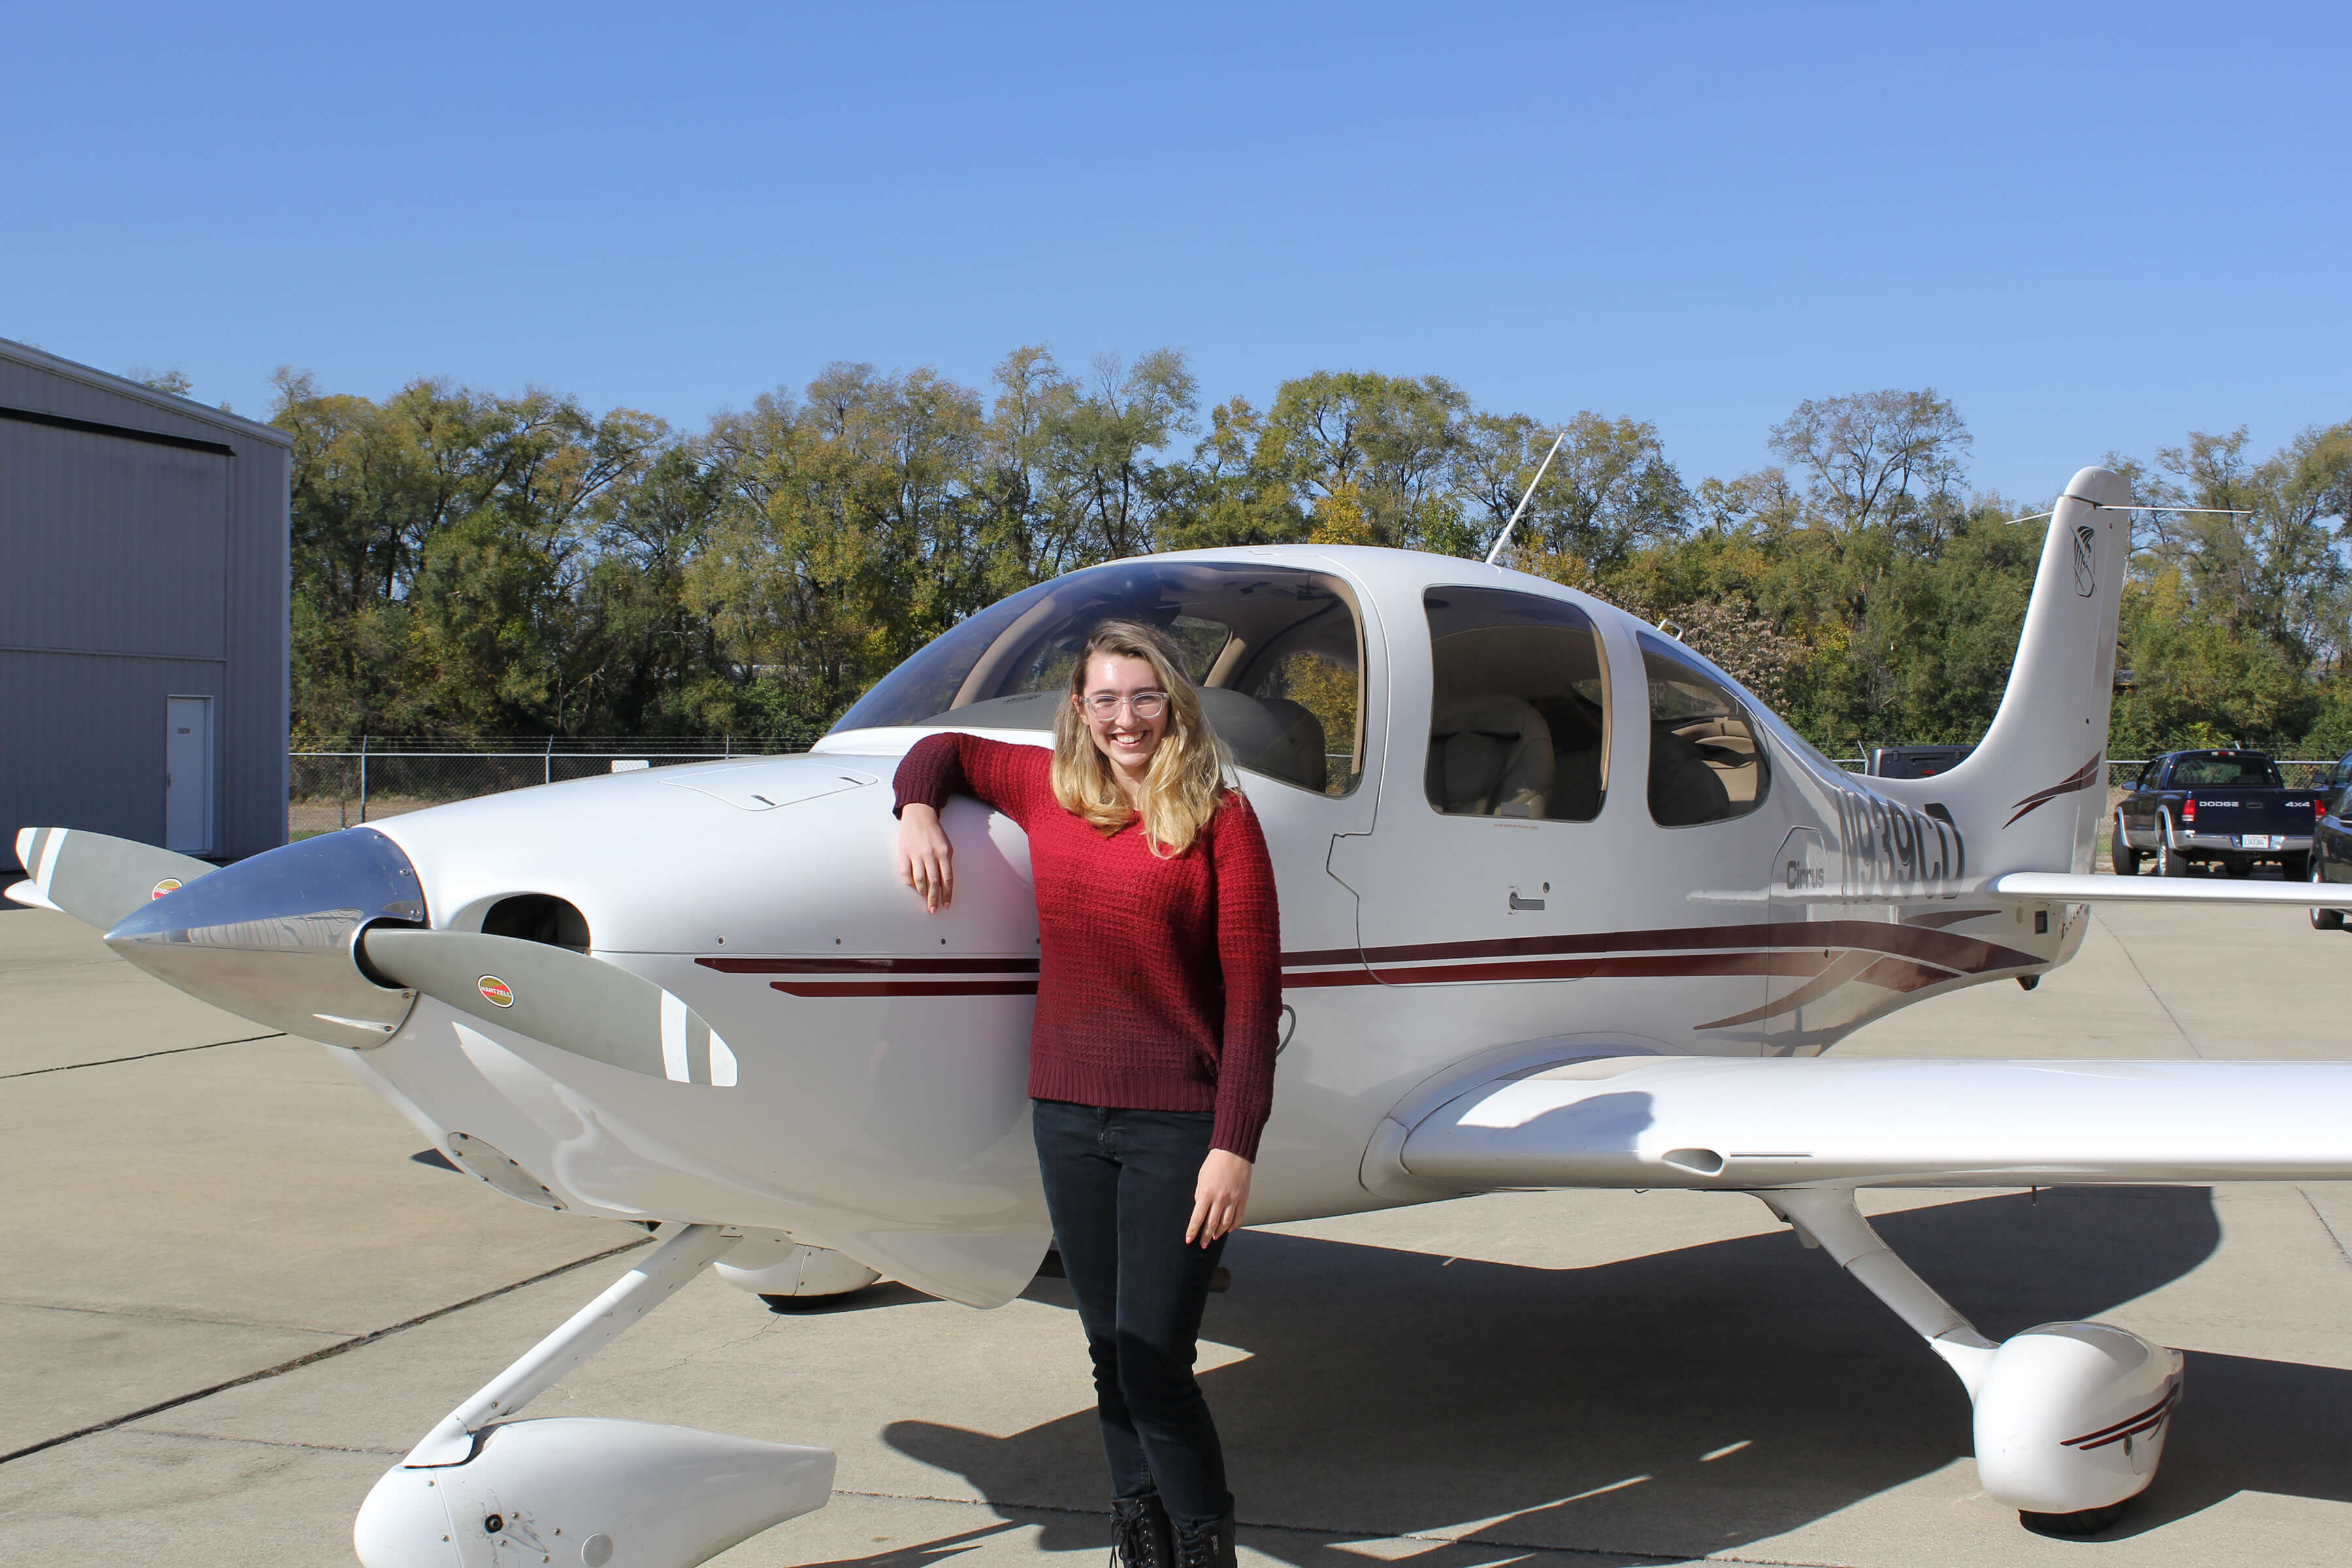 Aviation student with plane